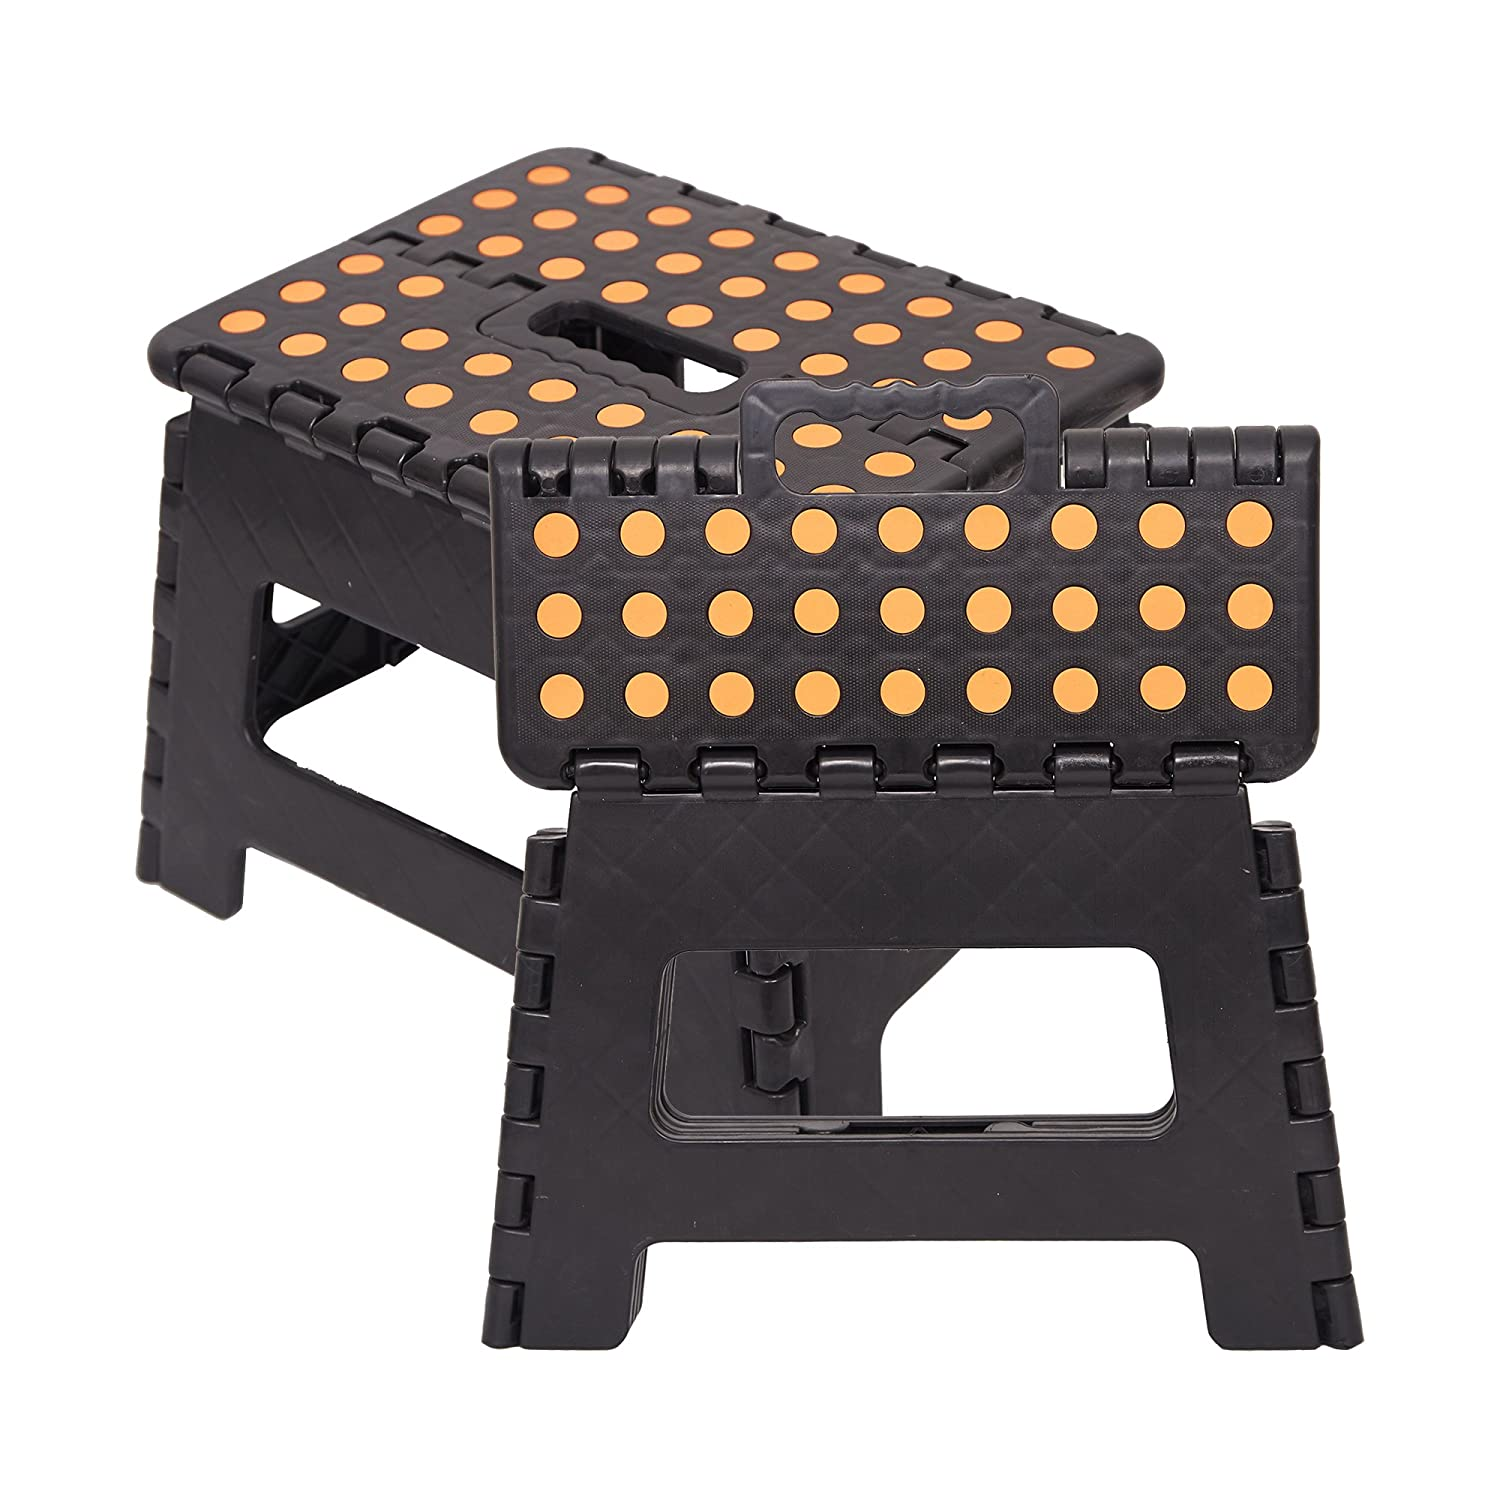 Peachy 2 Pack 8 Inch Small Foldable Step Stool For Kids Machost Co Dining Chair Design Ideas Machostcouk